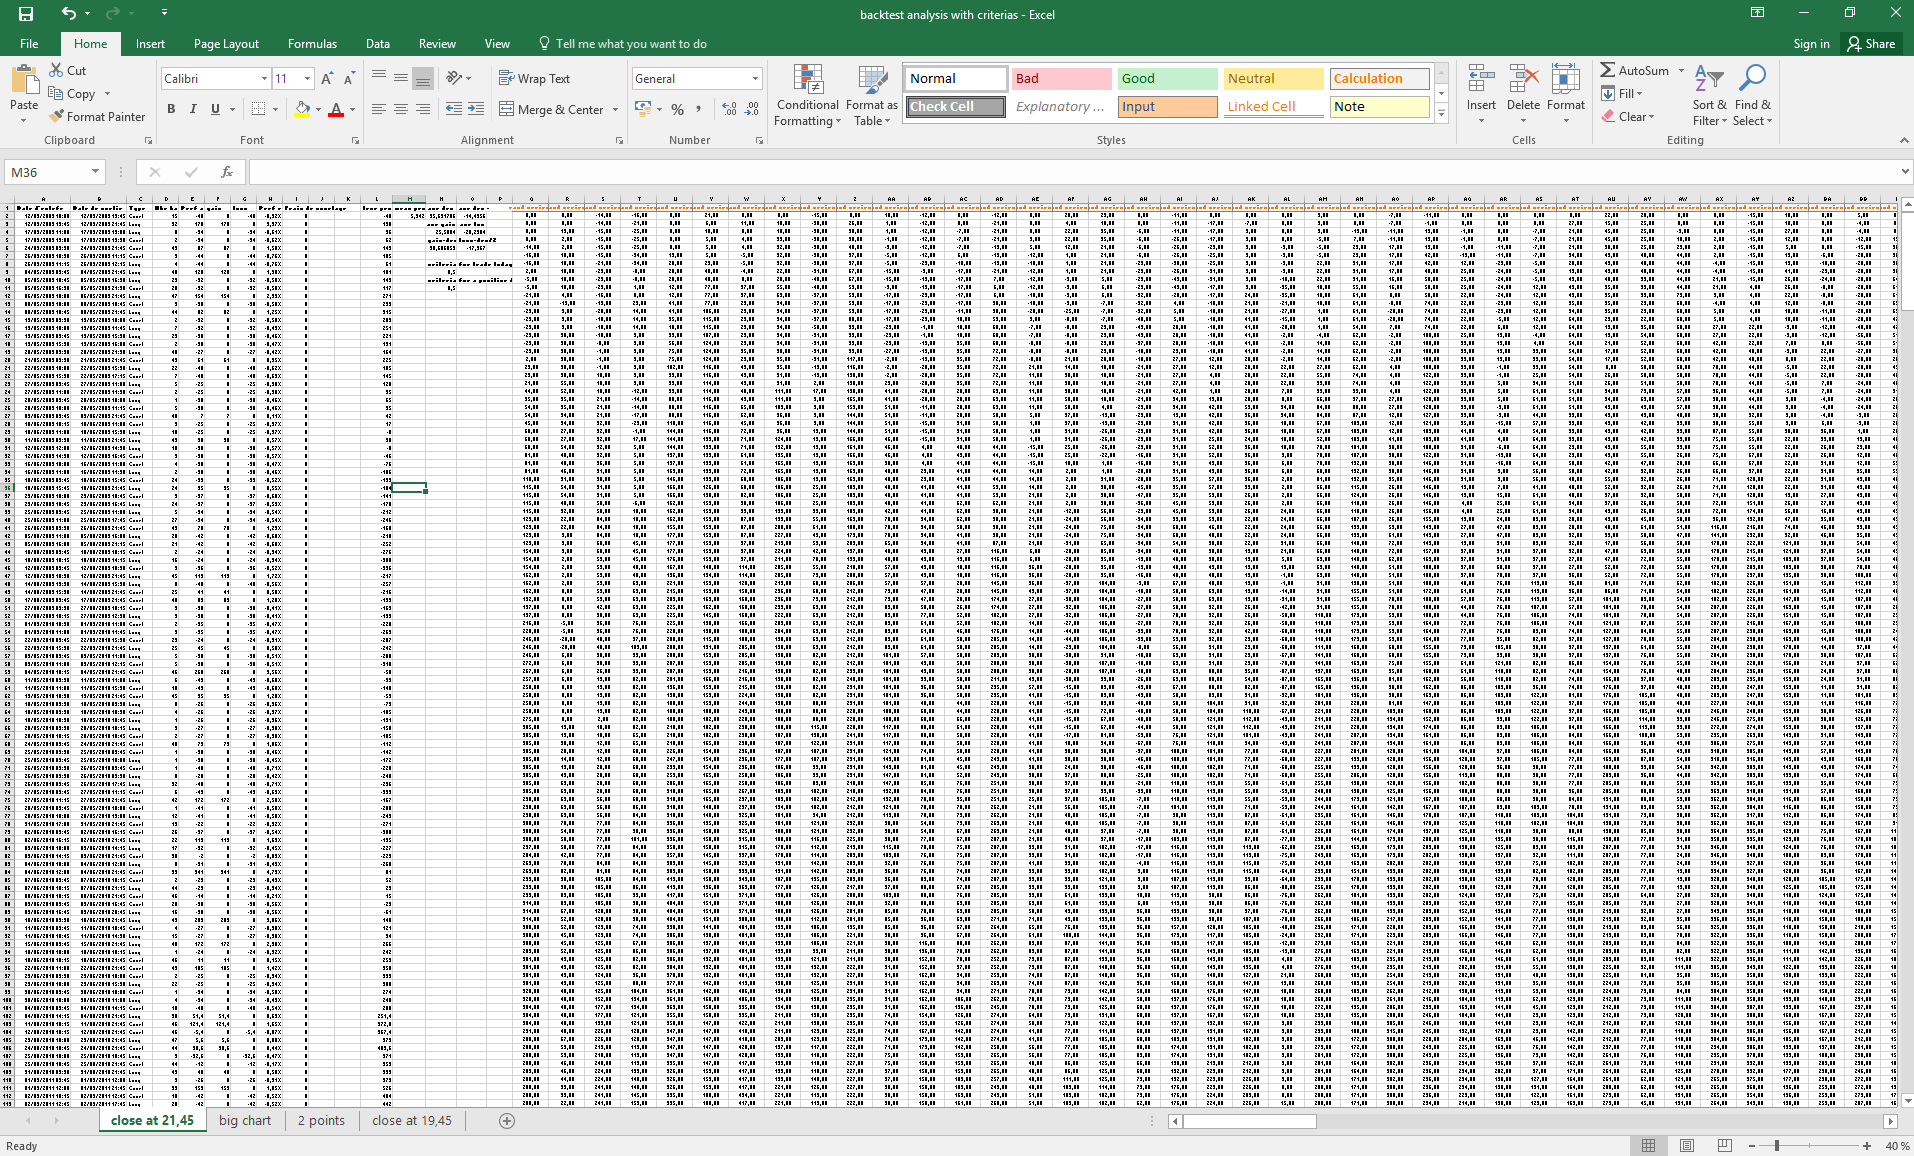 Prorealcode all posts excel spreadsheet for trading analysis nvjuhfo Choice Image